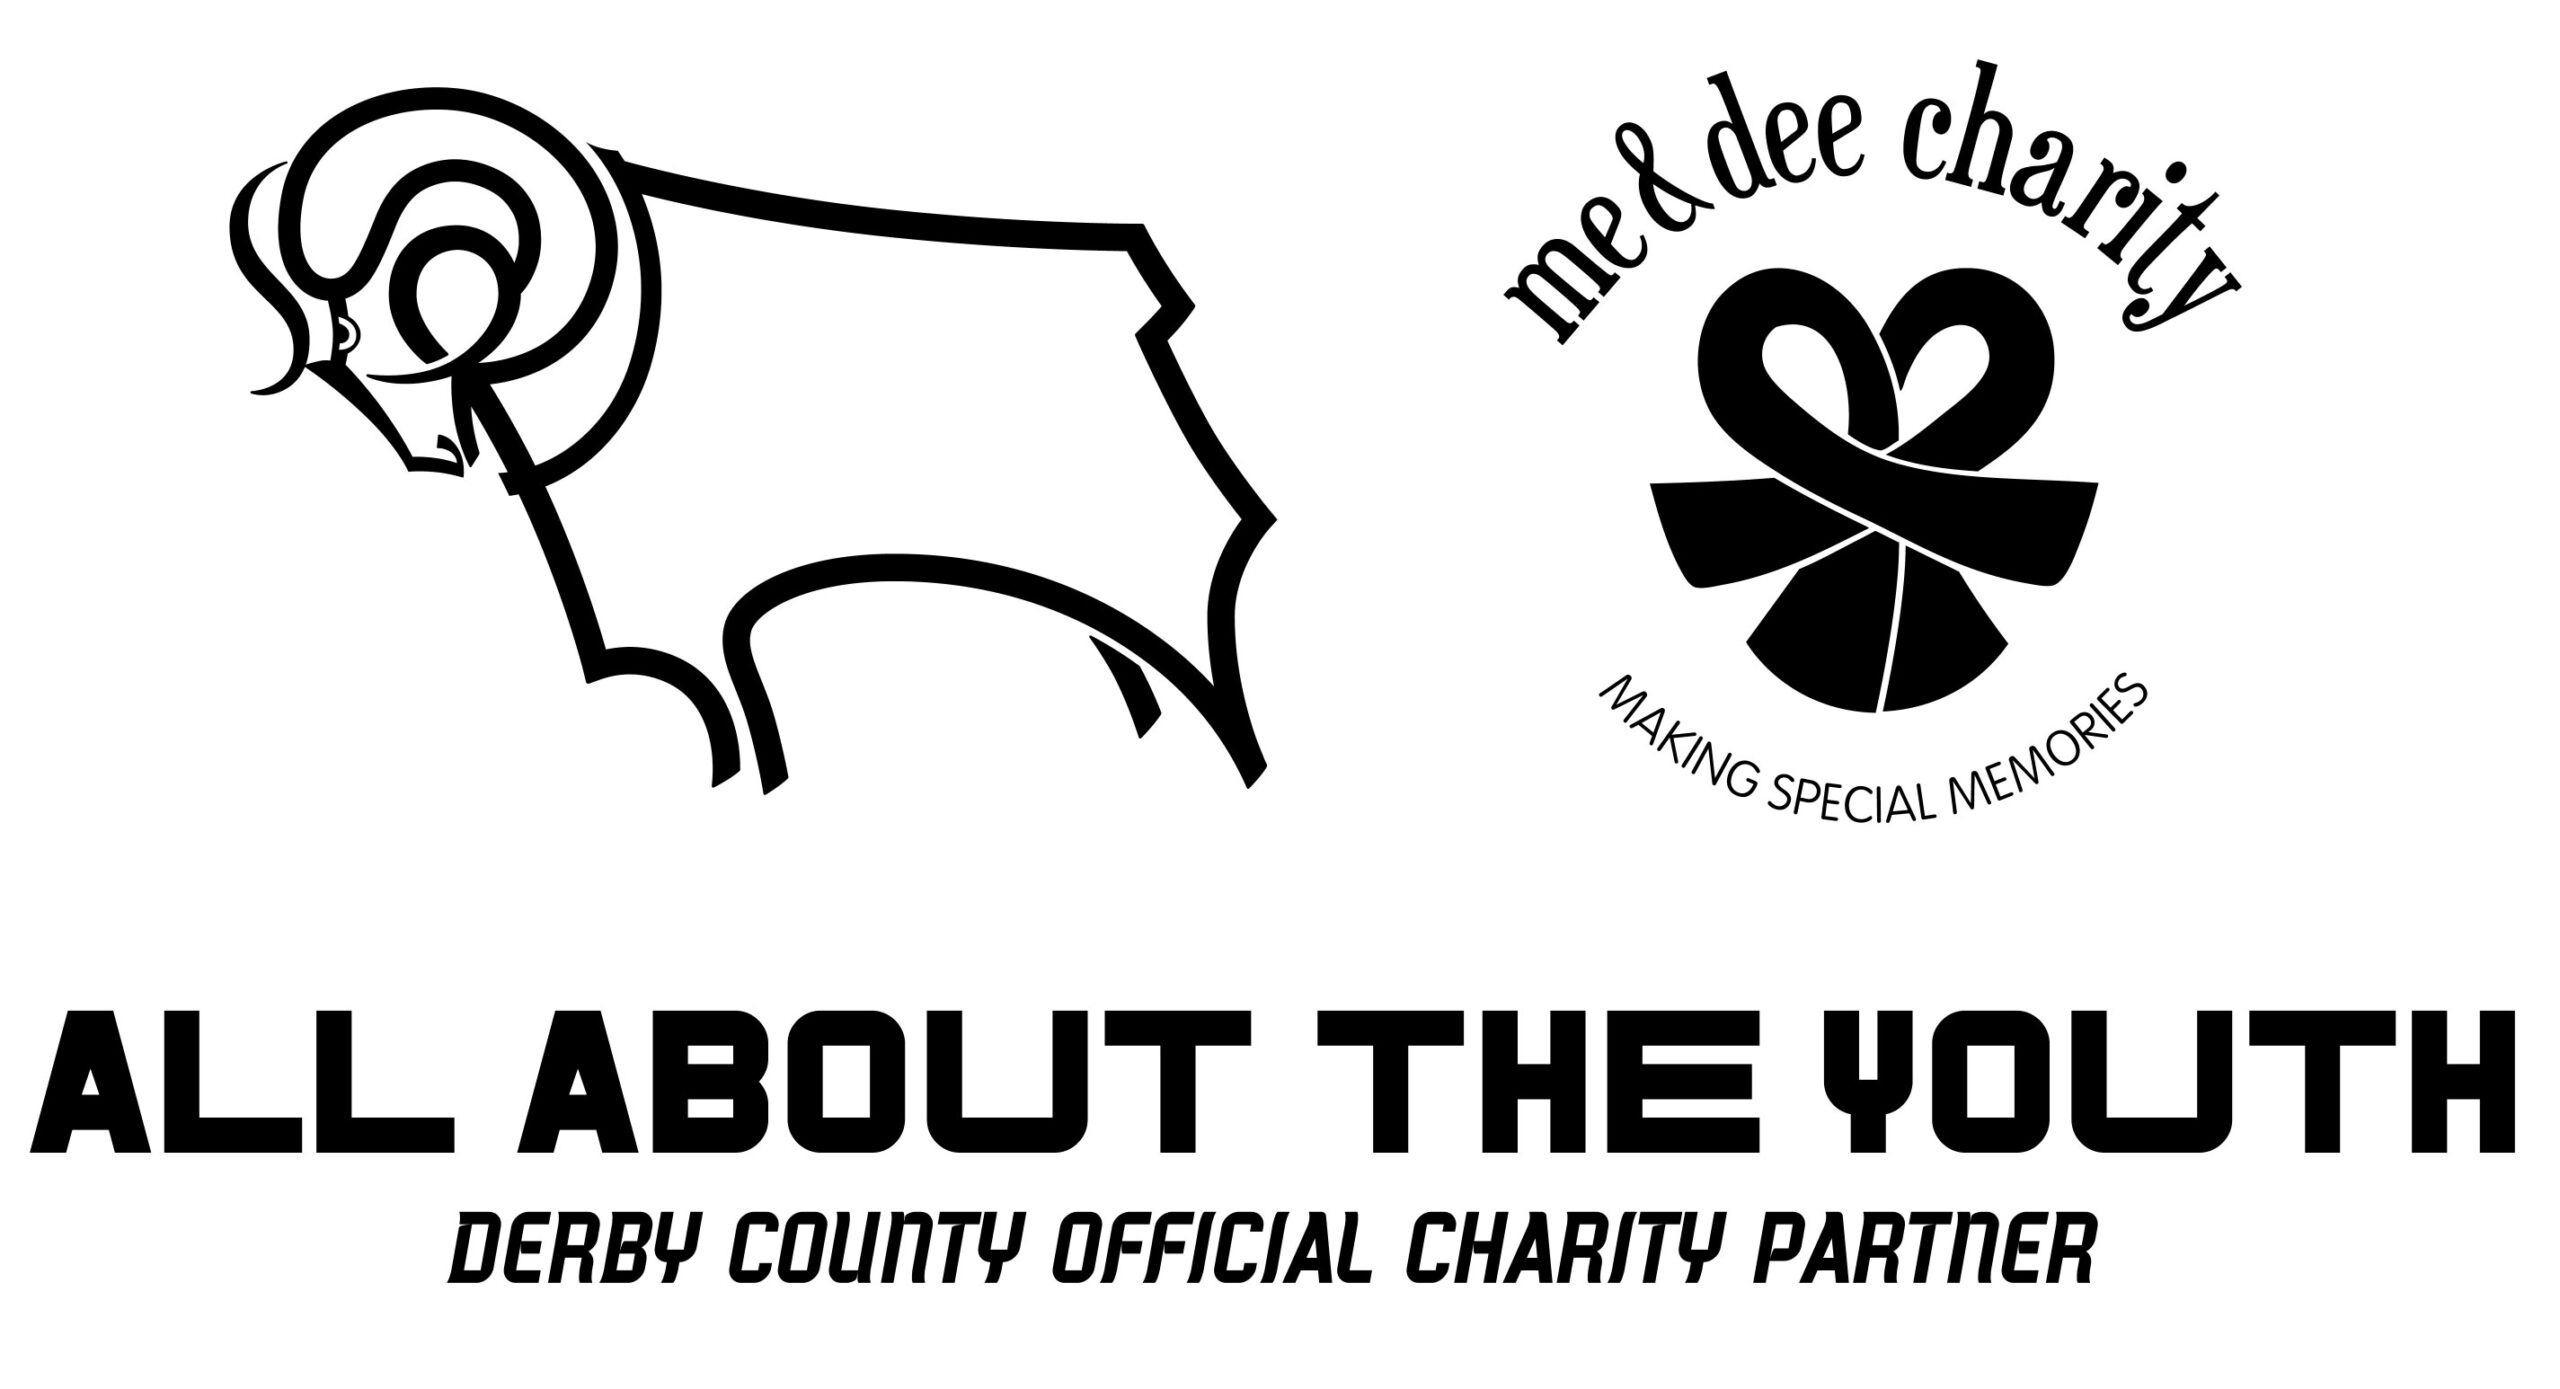 Charity Partnership with DCFC